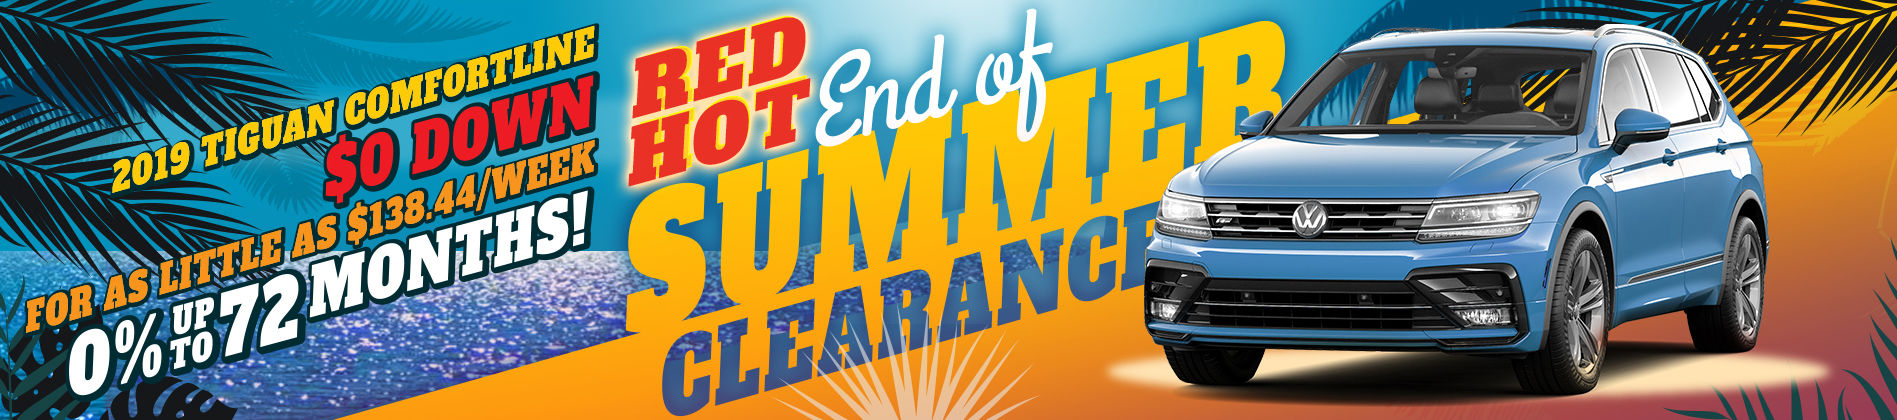 Red Hot End of Summer Clearance